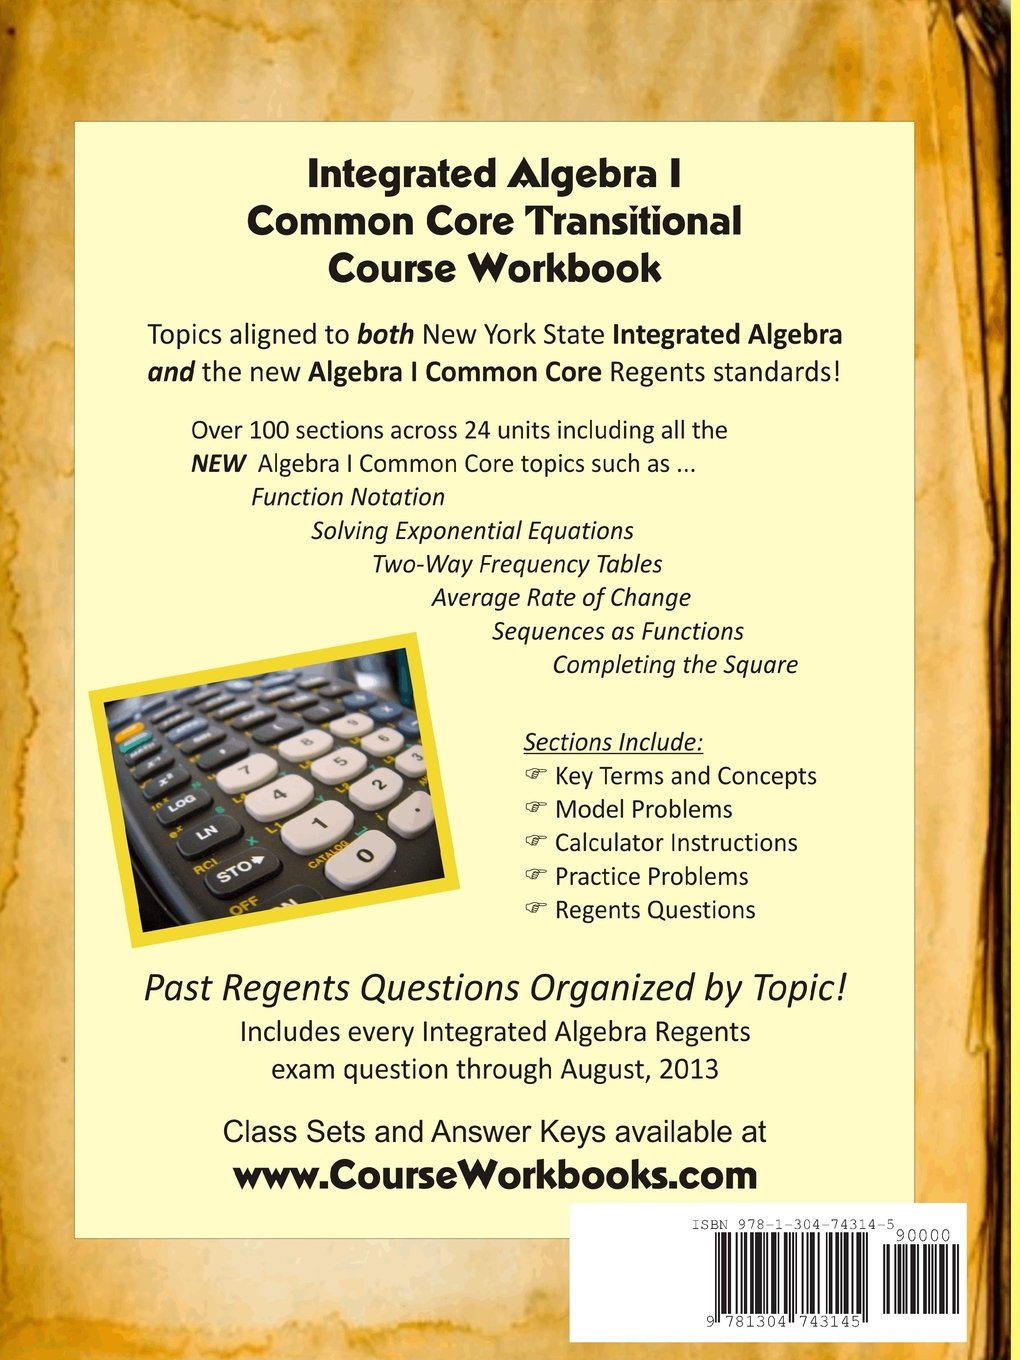 Amazon.com: Integrated Algebra I Common Core Transitional Course ...